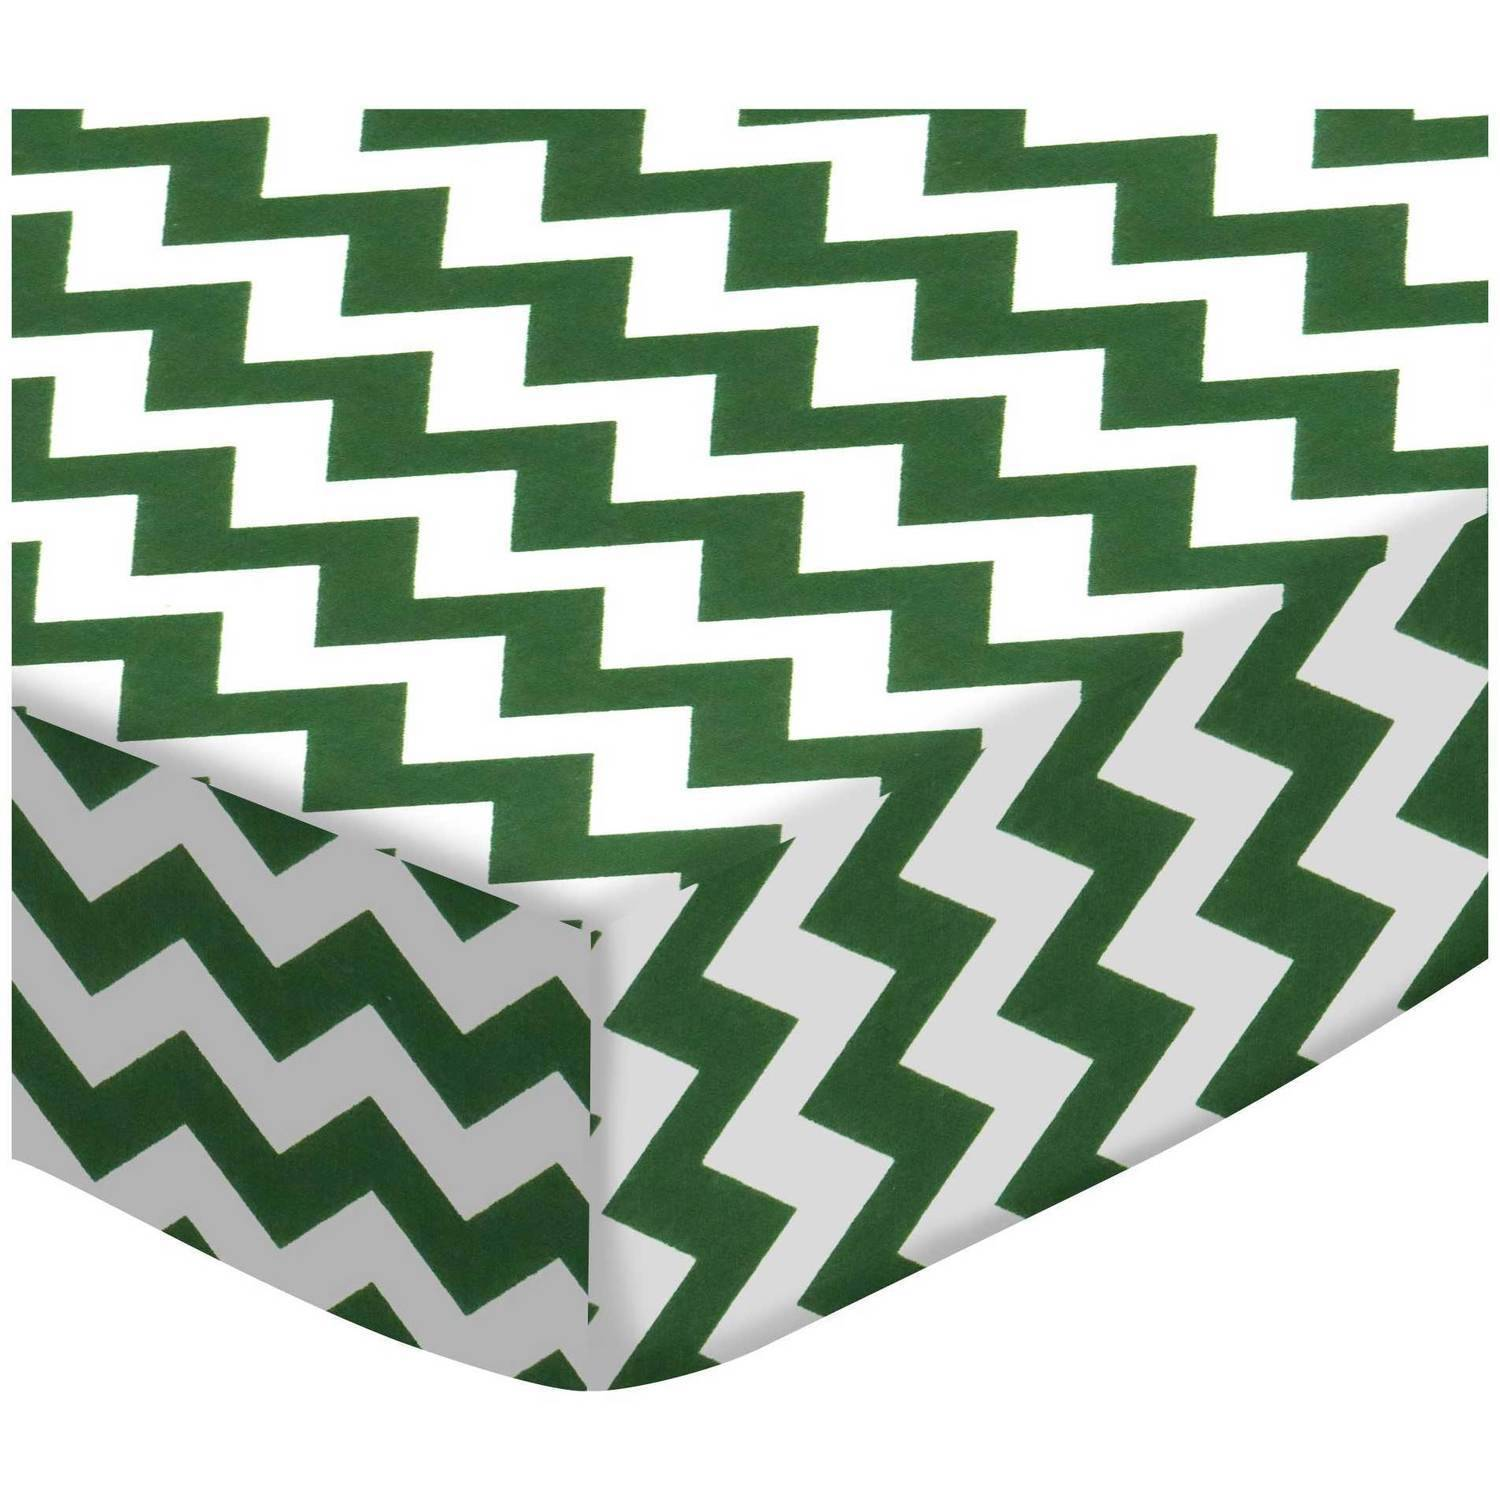 SheetWorld Fitted Pack N Play (Graco Square Playard) Sheet - Hunter Green Chevron Zigzag